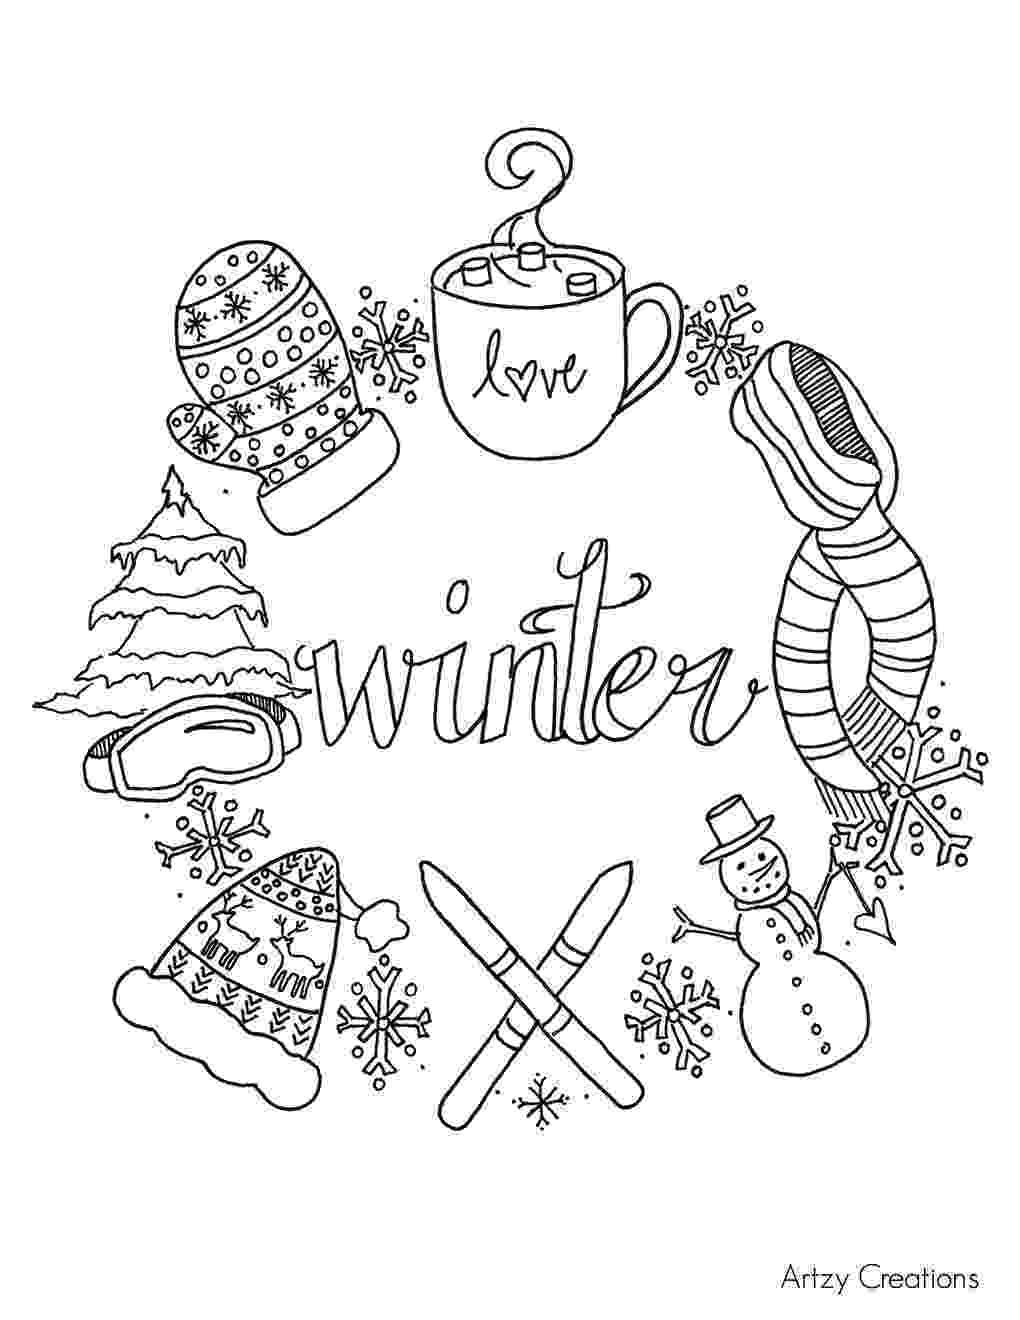 free printable winter coloring pages for kids winter rabbit and snowman coloring pages winter coloring printable kids pages free for winter